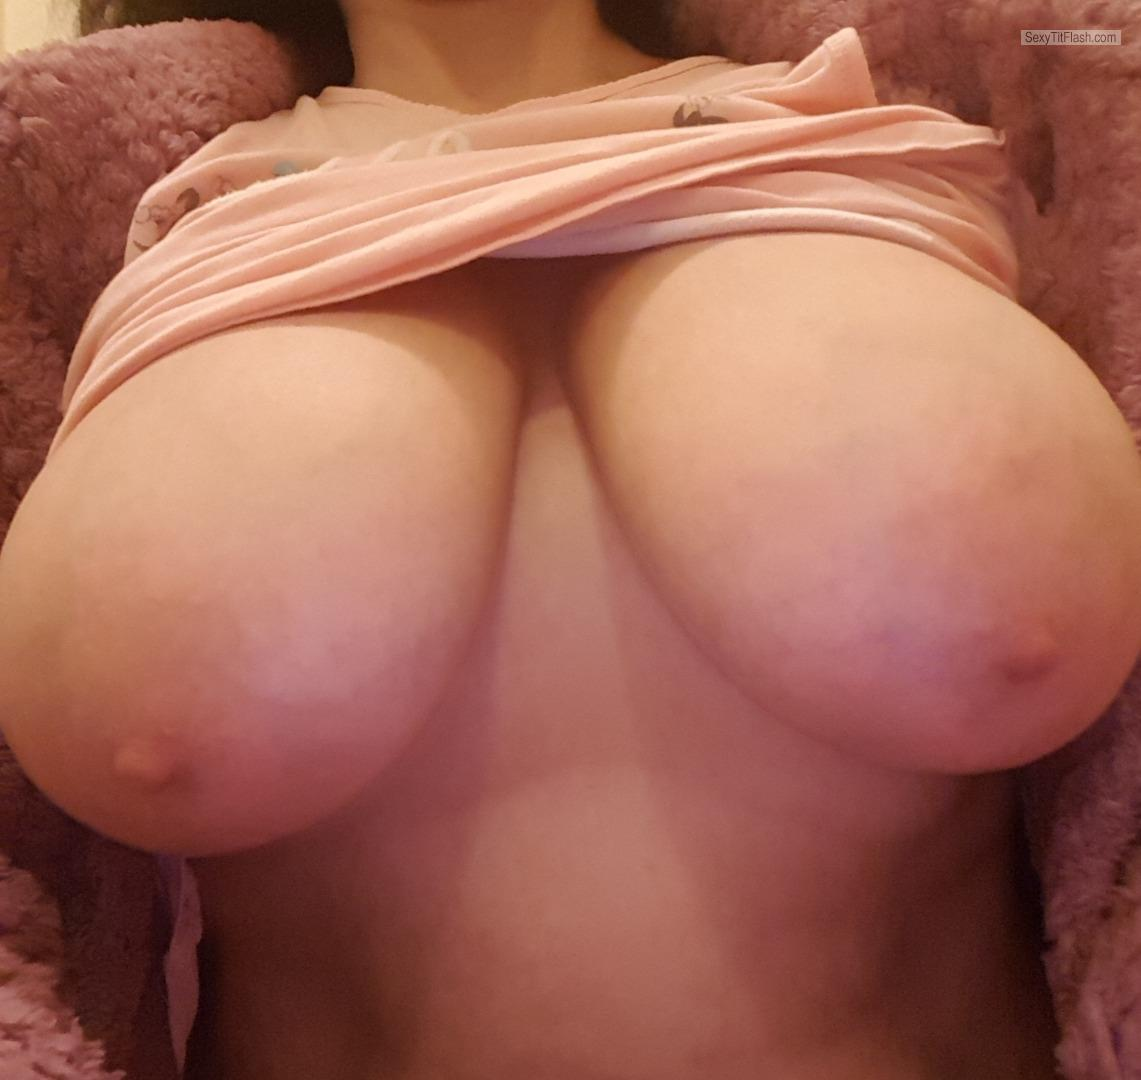 Tit Flash: My Very Big Tits (Selfie) - Mksbitch from United Kingdom